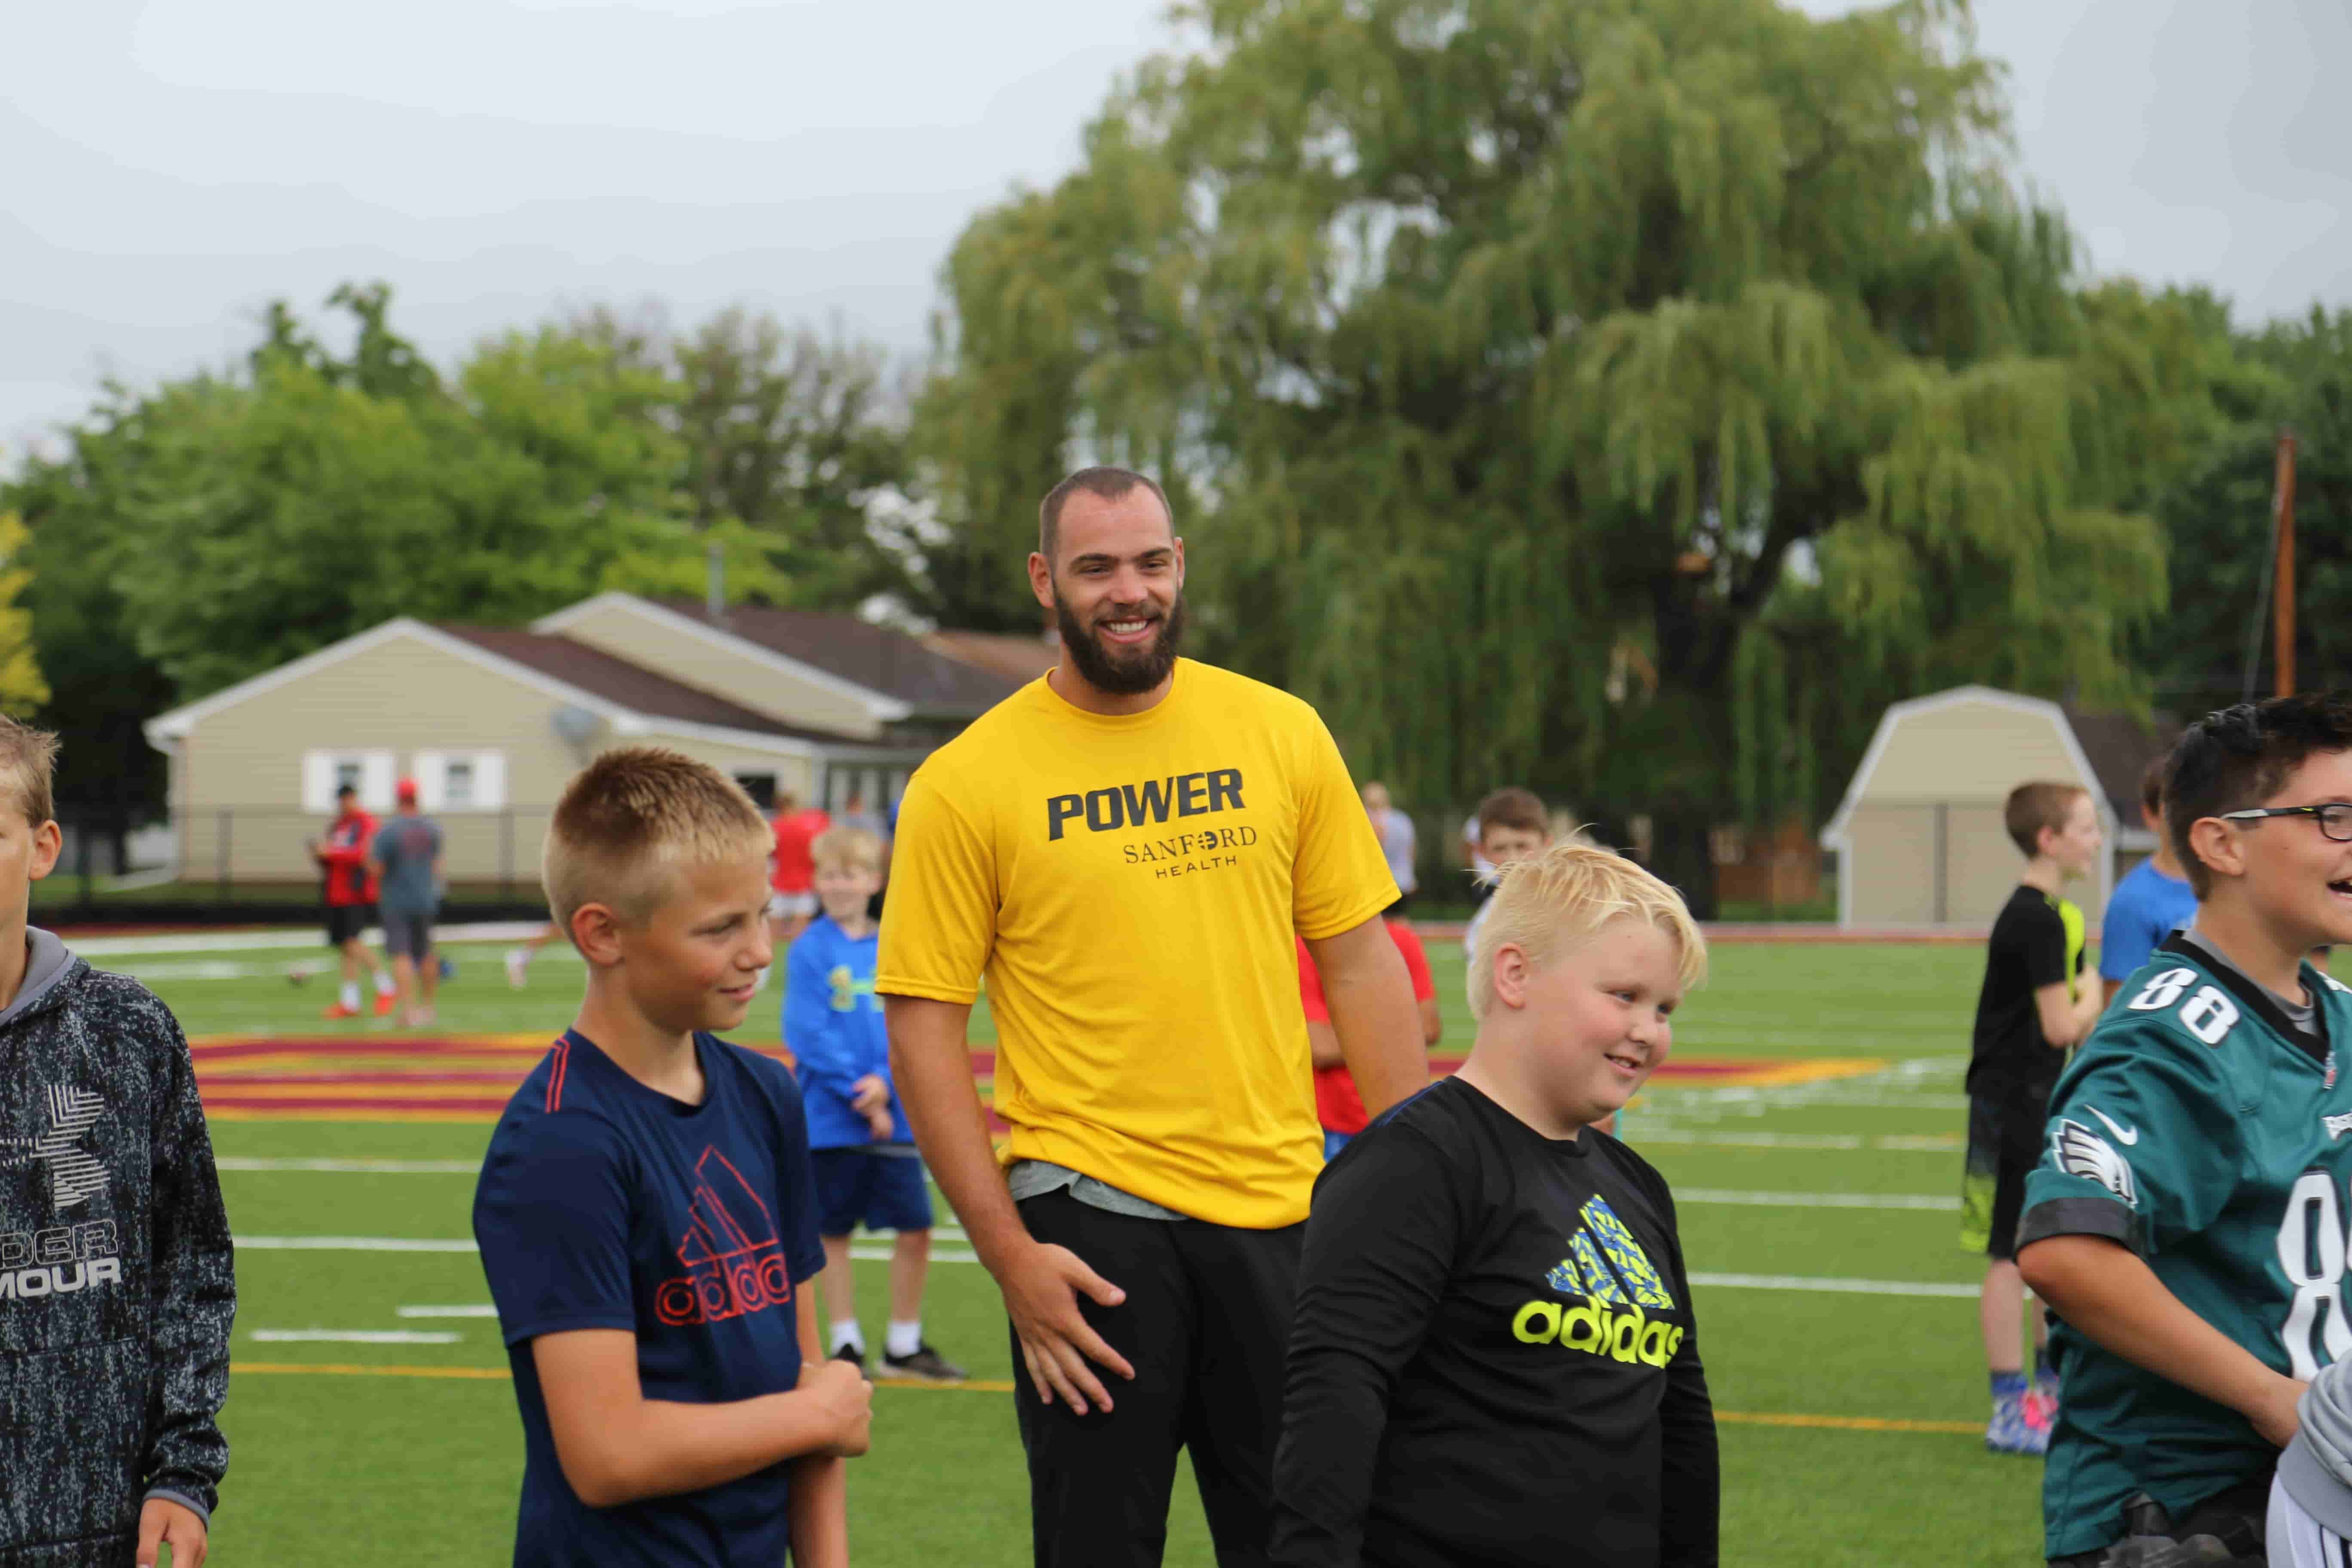 NFL player standing with kids at football practice field